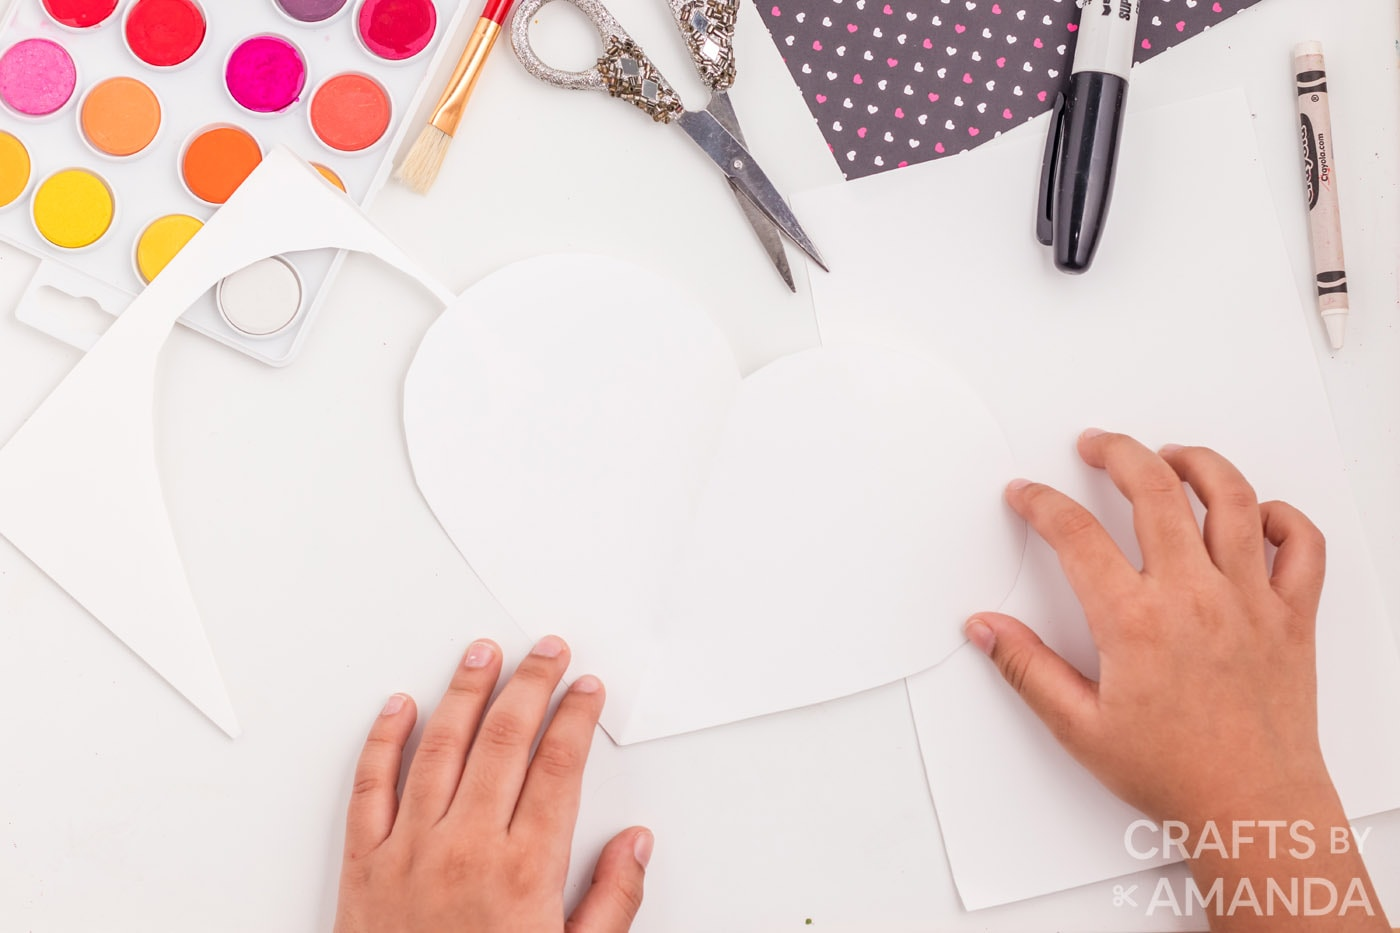 cutting out a heart from the small pieces of paper